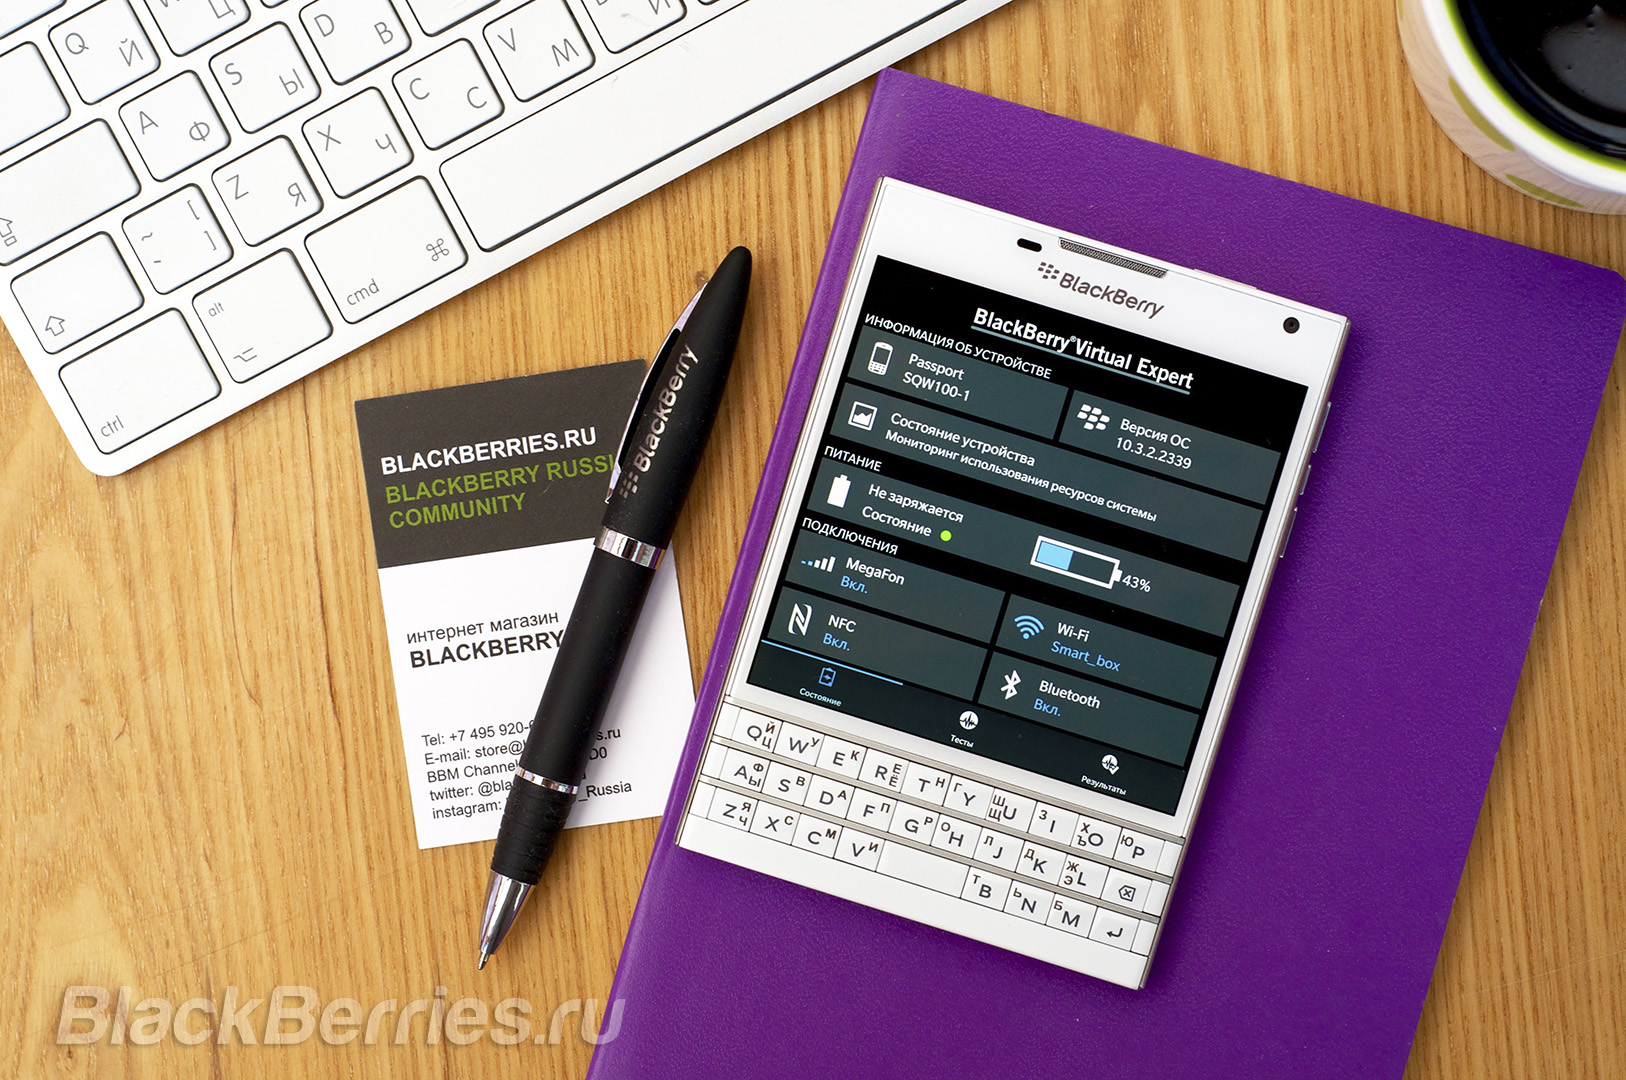 BlackBerry-Passport-Apps-31-07-05